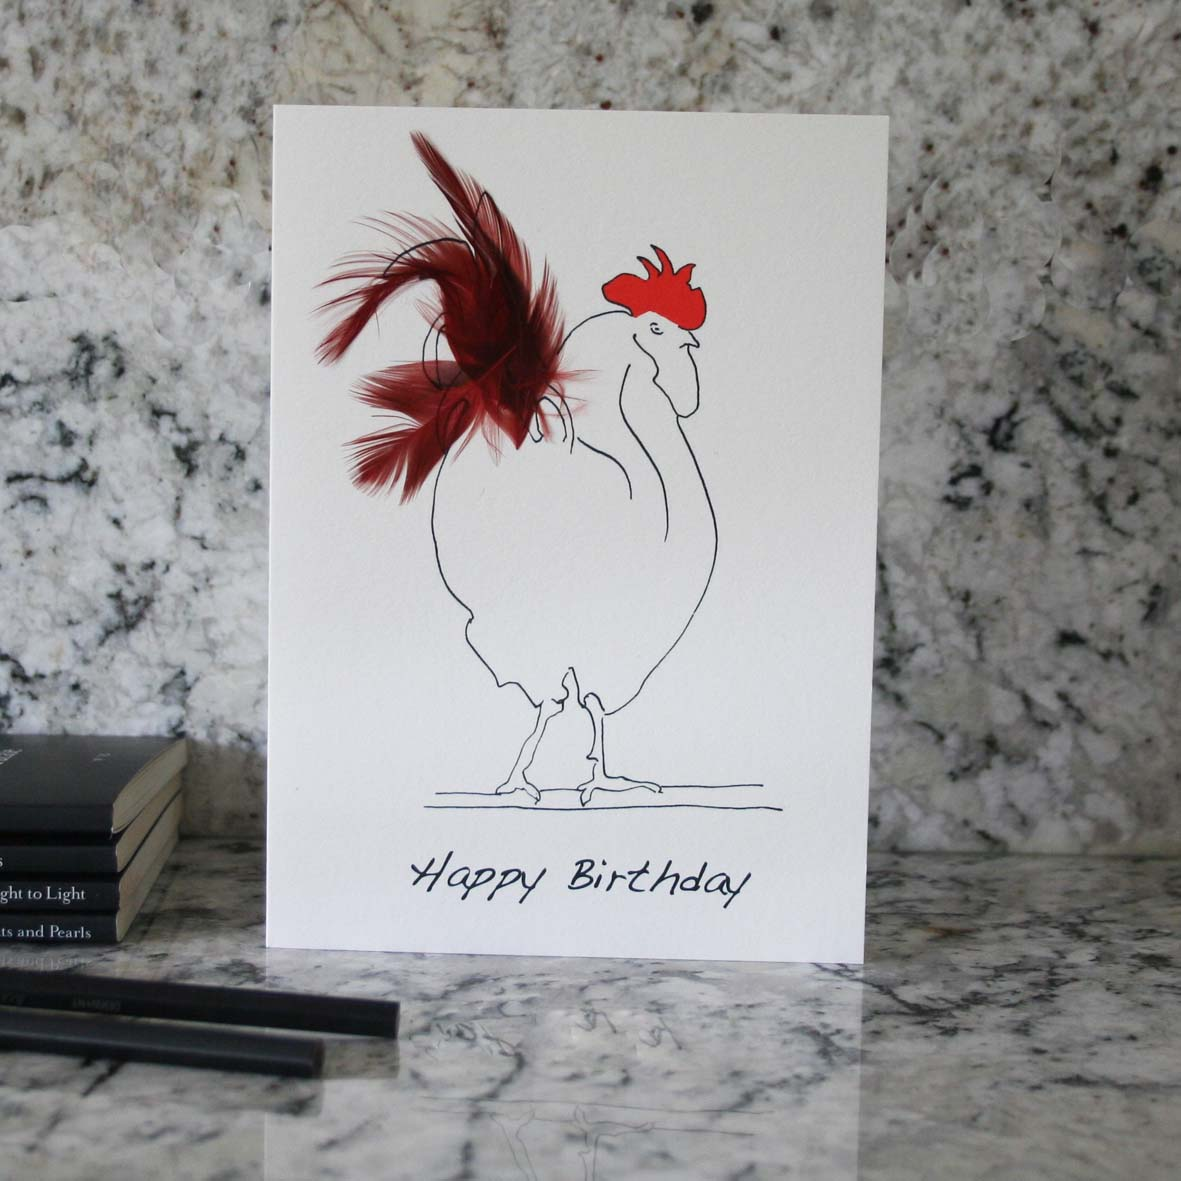 Herk Cockerel happy birthday card with red feathers